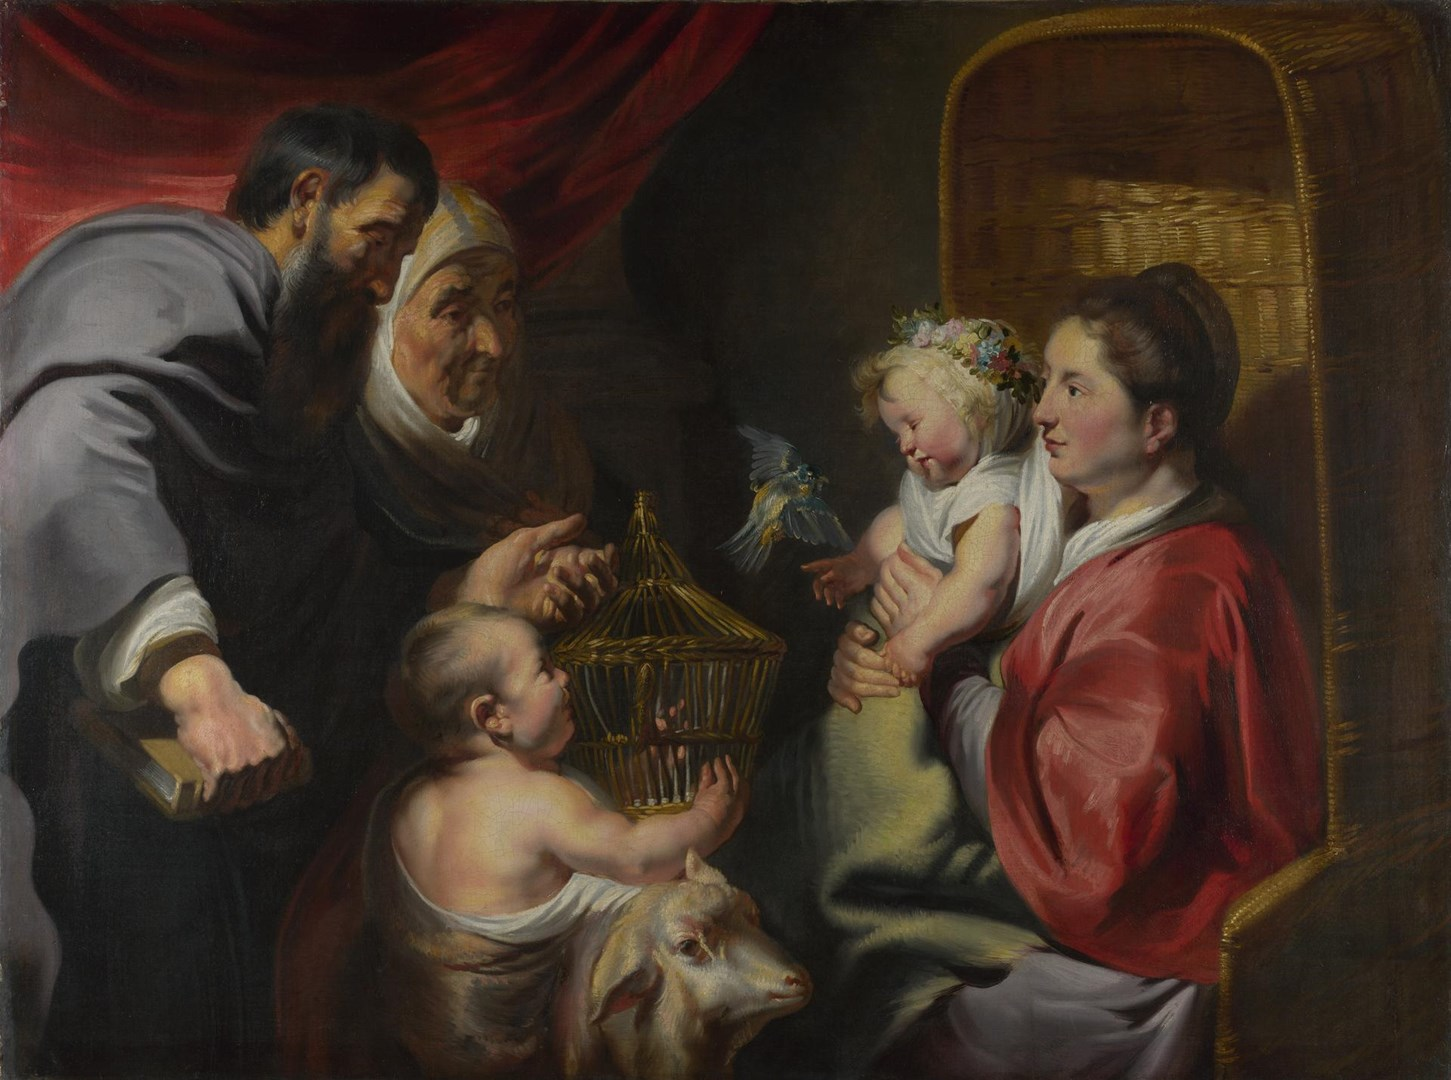 The Virgin and Child with Saint John and his Parents by Jacob Jordaens